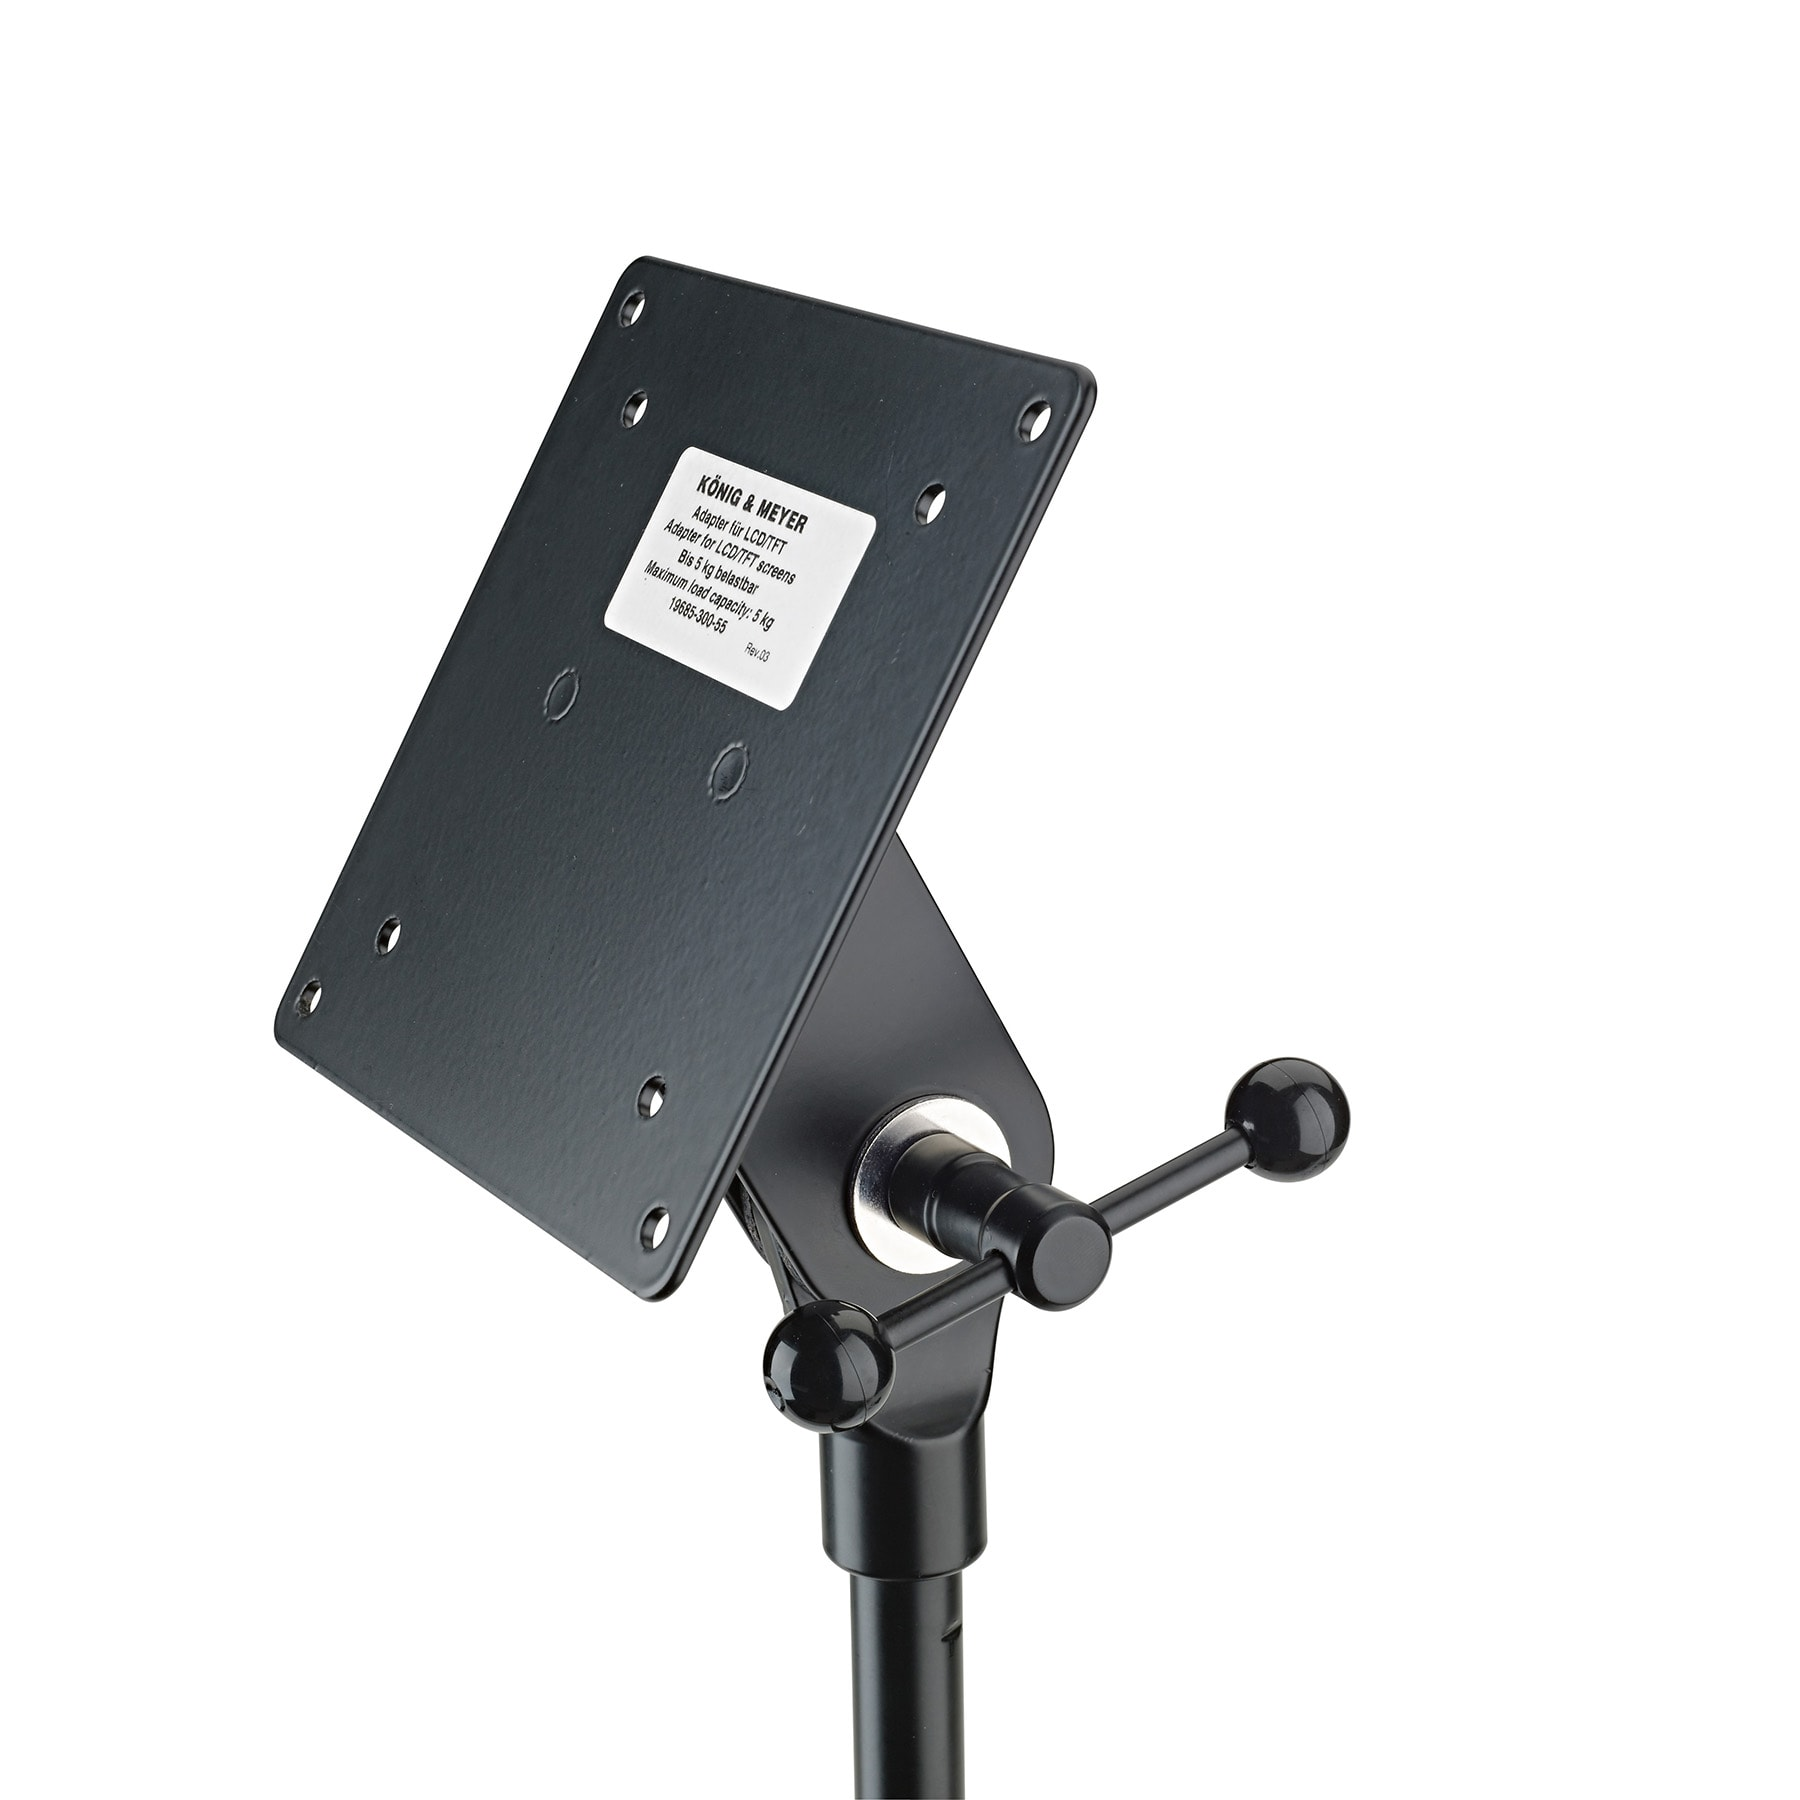 KM19685 - Adapter for screens